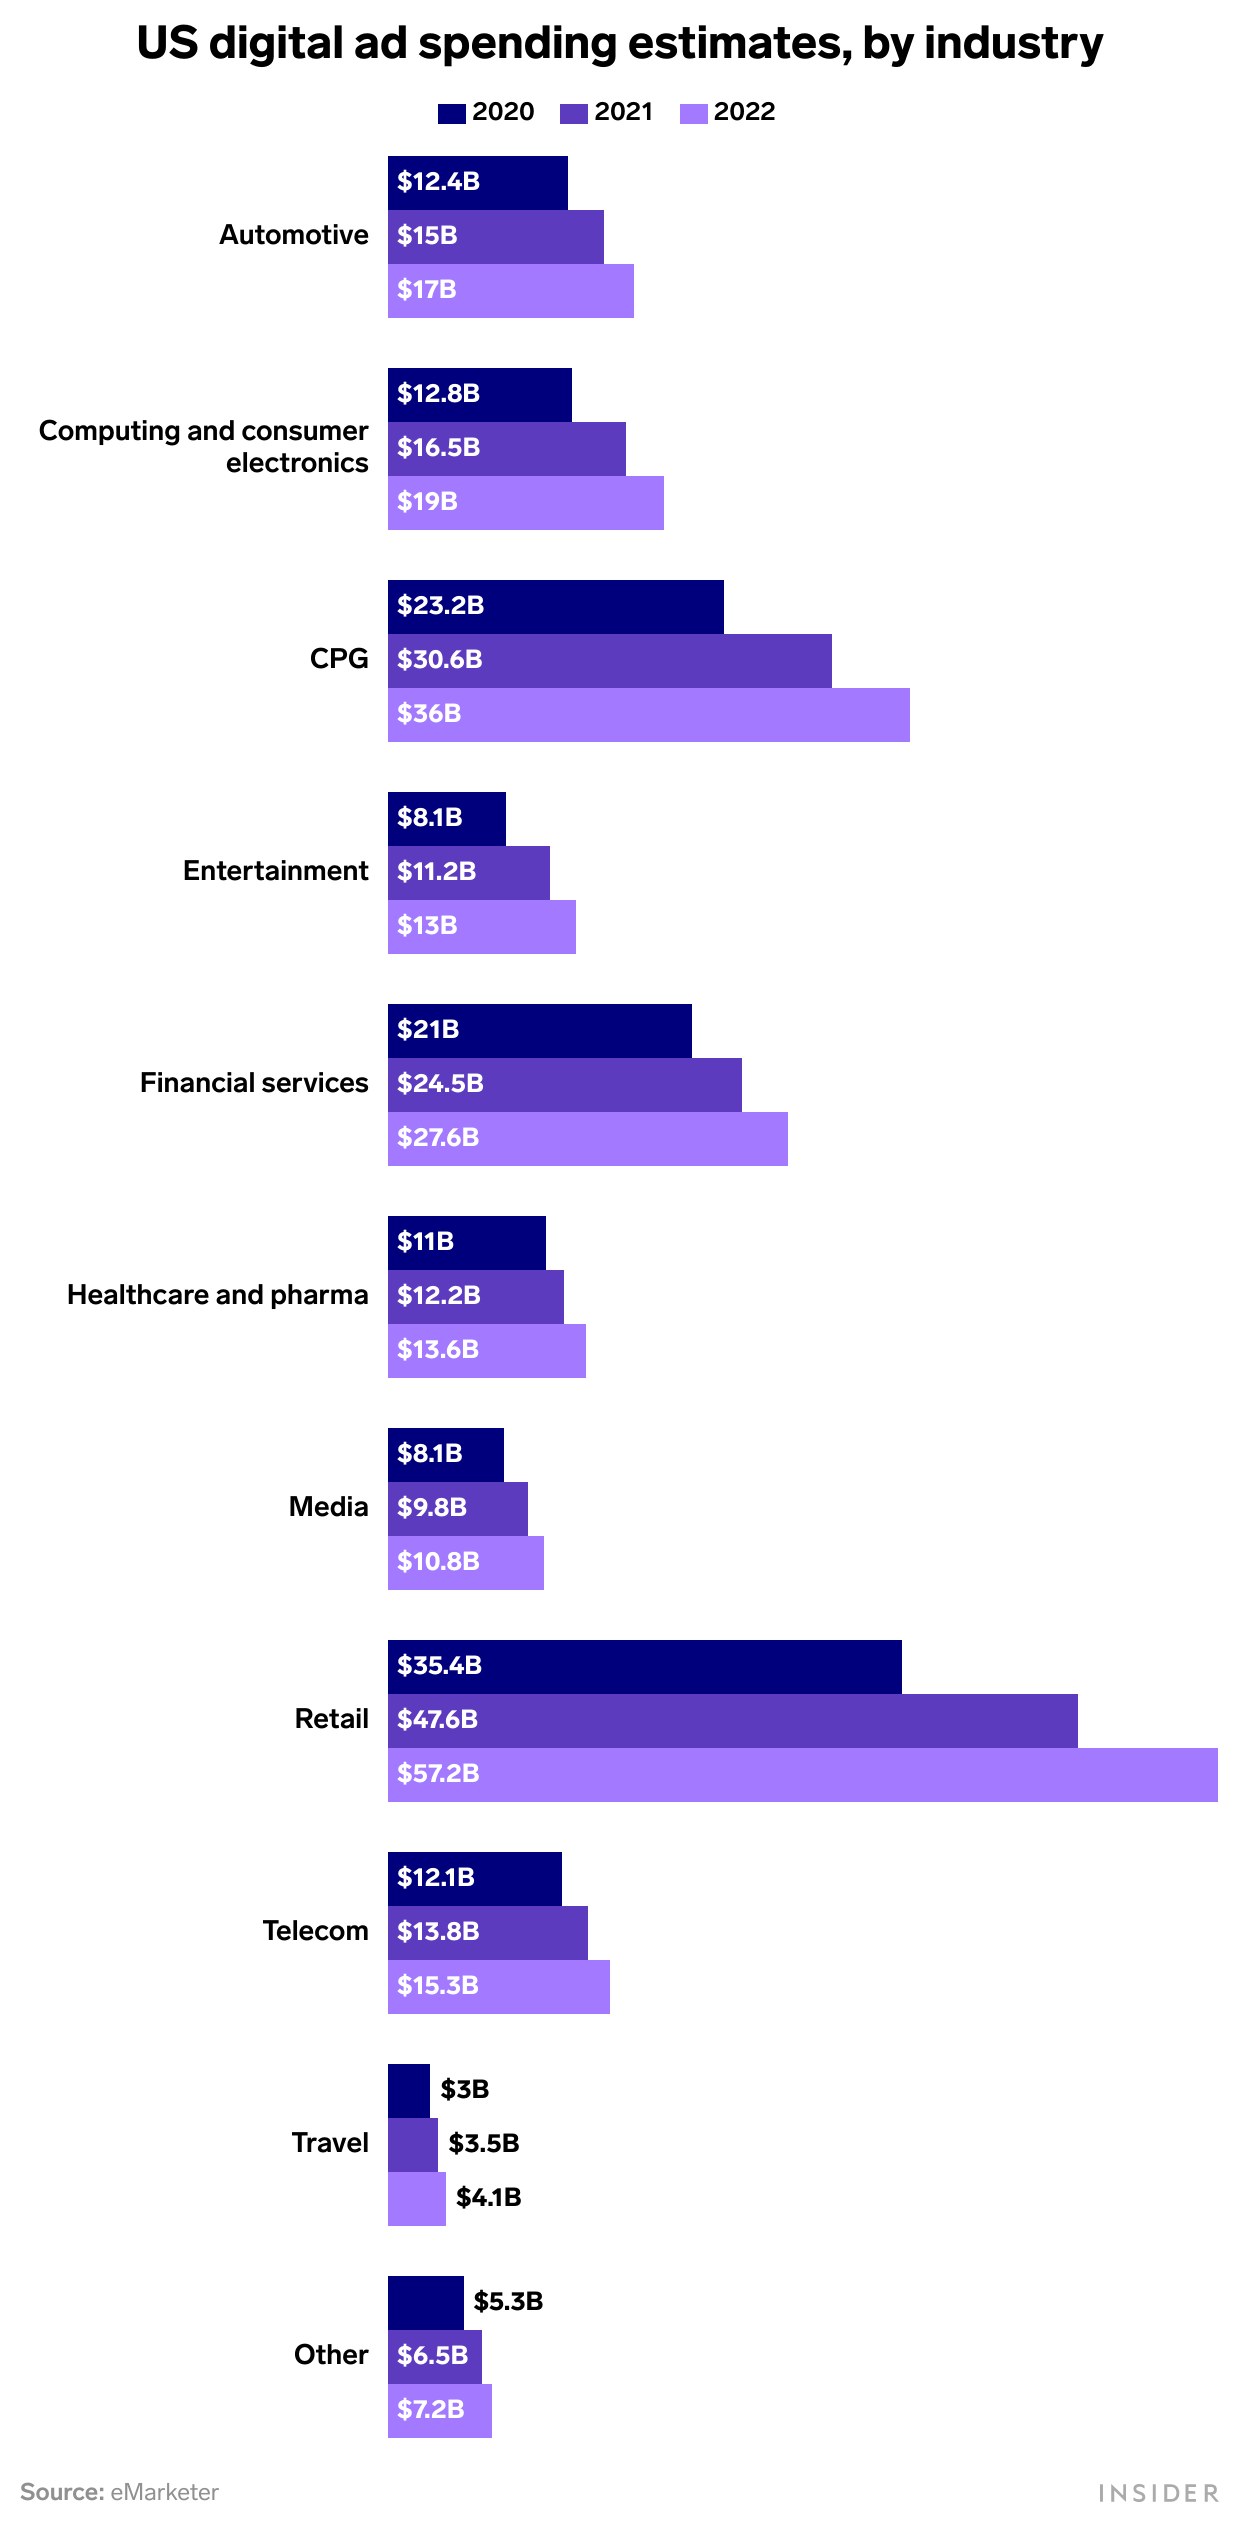 Stacked bar chart of digital ad spending estimates shown over 2019, 2020, and 2021